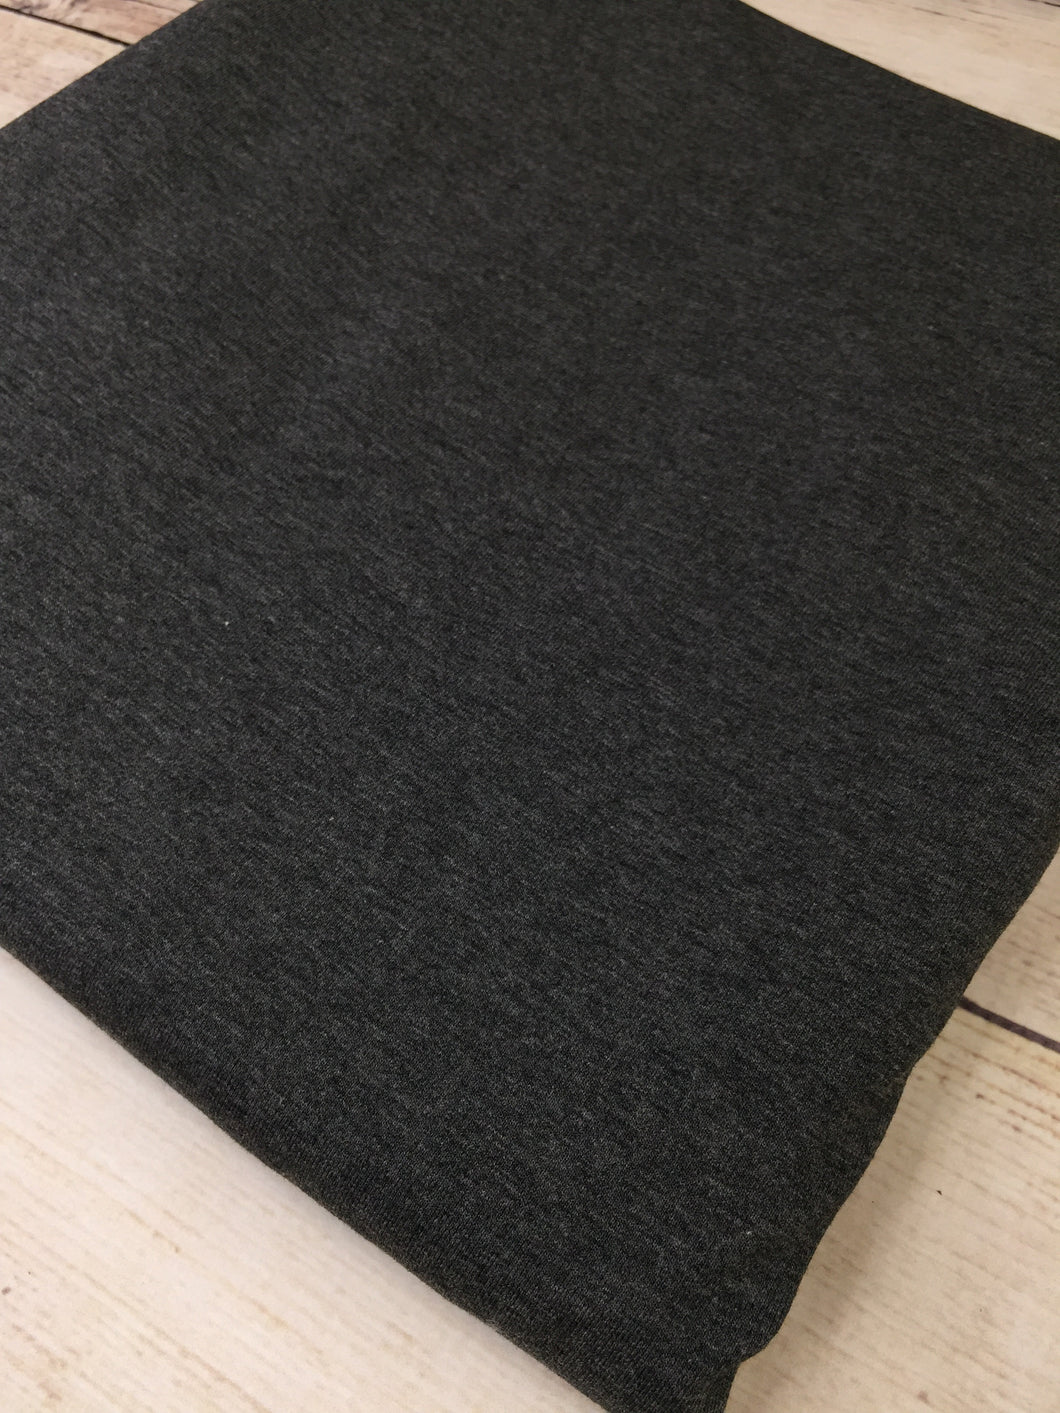 Charcoal Cotton Lycra Jersey 12oz